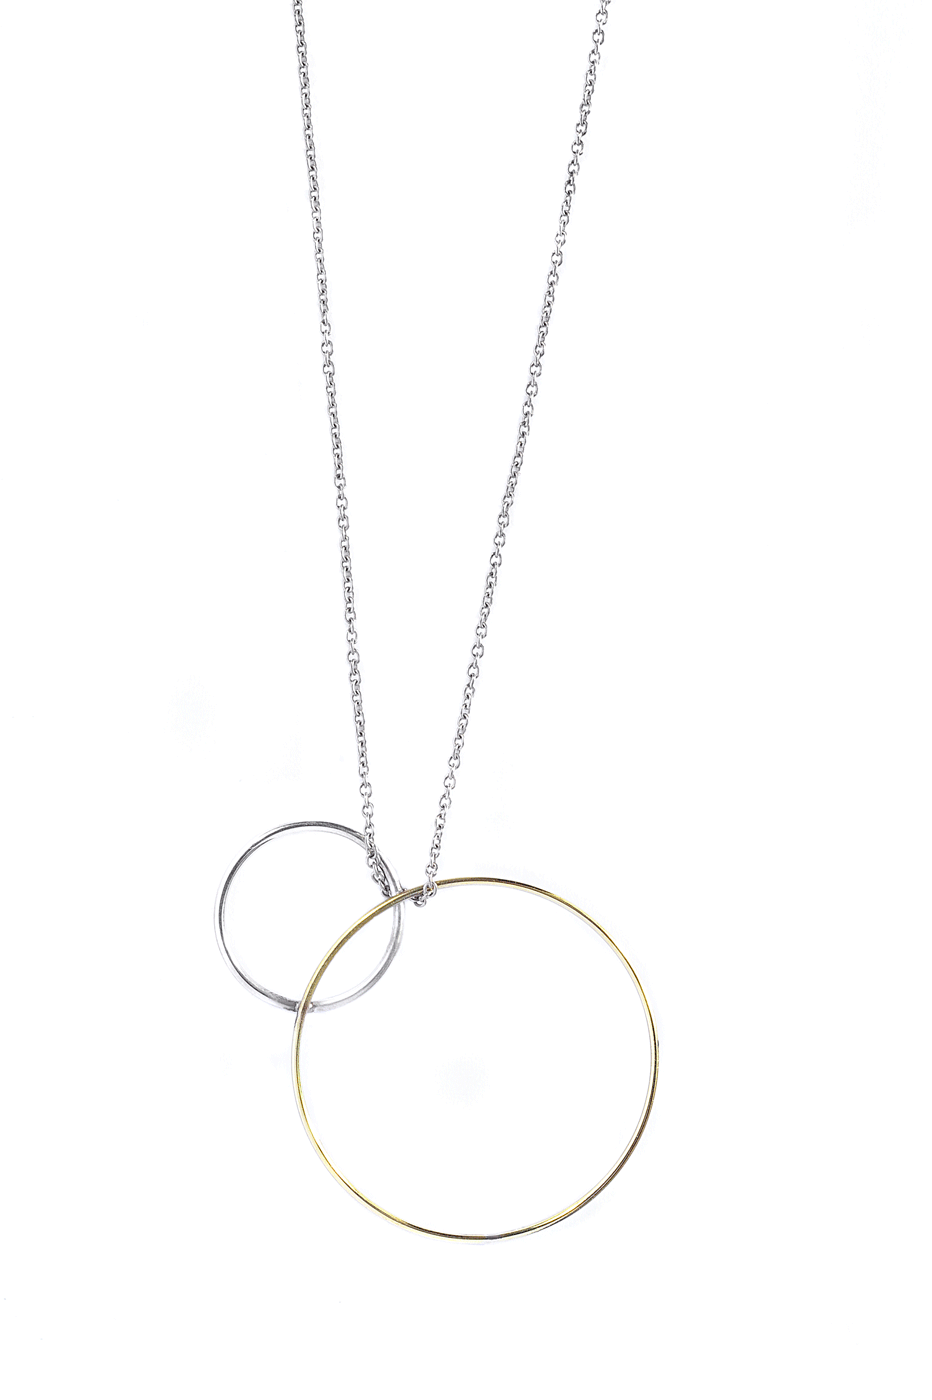 Adeline Cacheux Jewelry Design collier argent et or 18 carats necklace in sterling silver and 18k gold